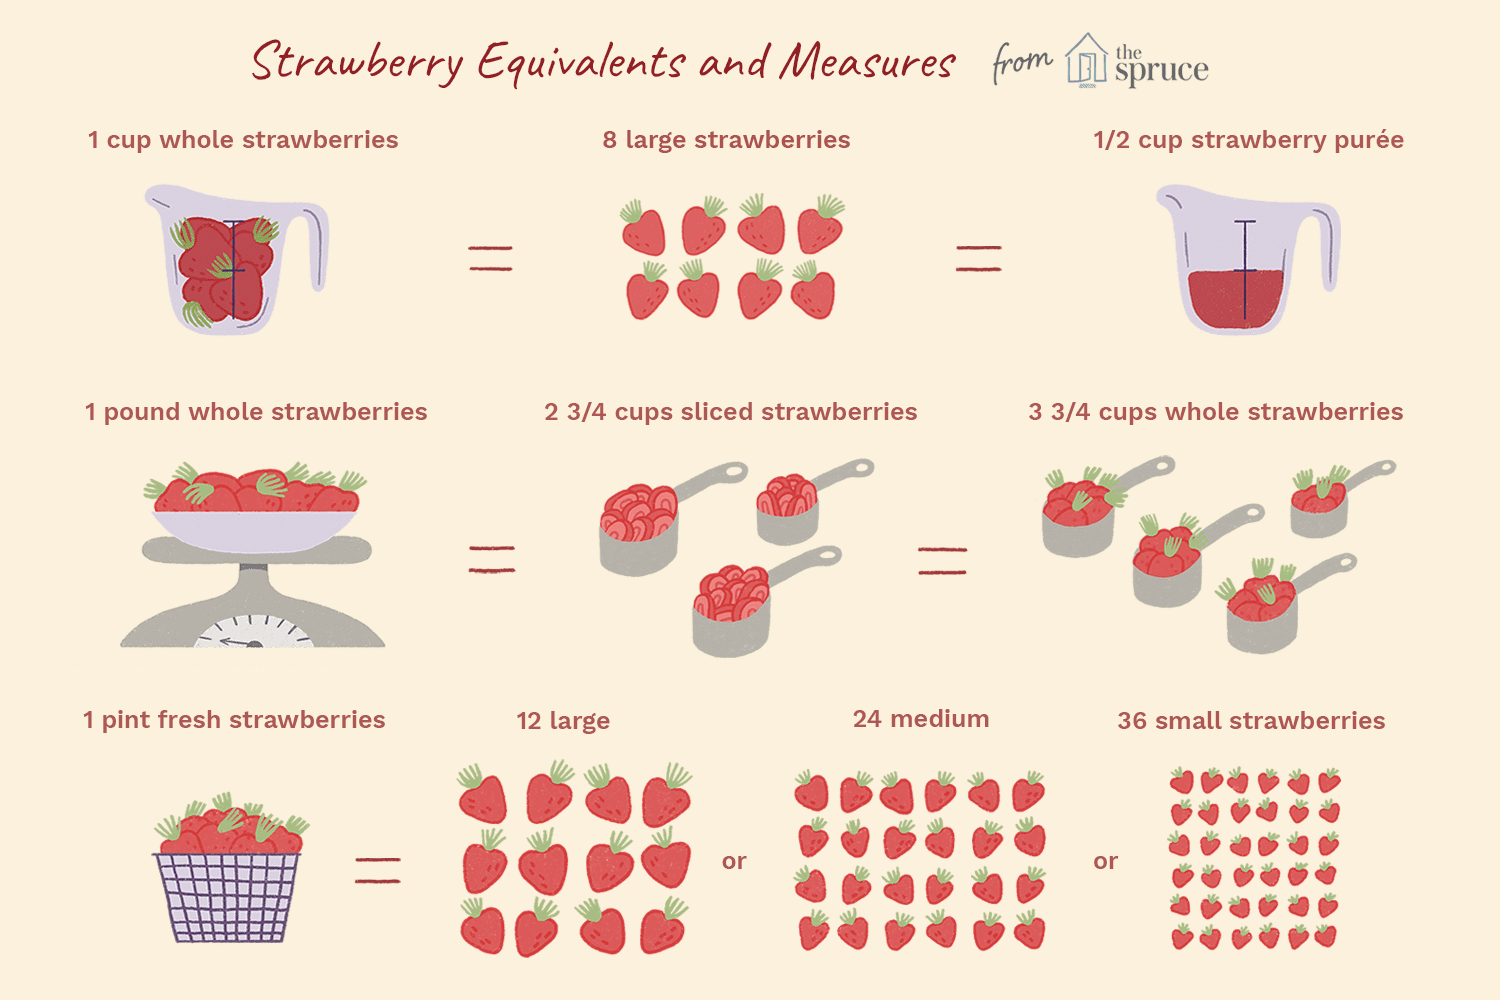 Strawberry Measures And Equivalents